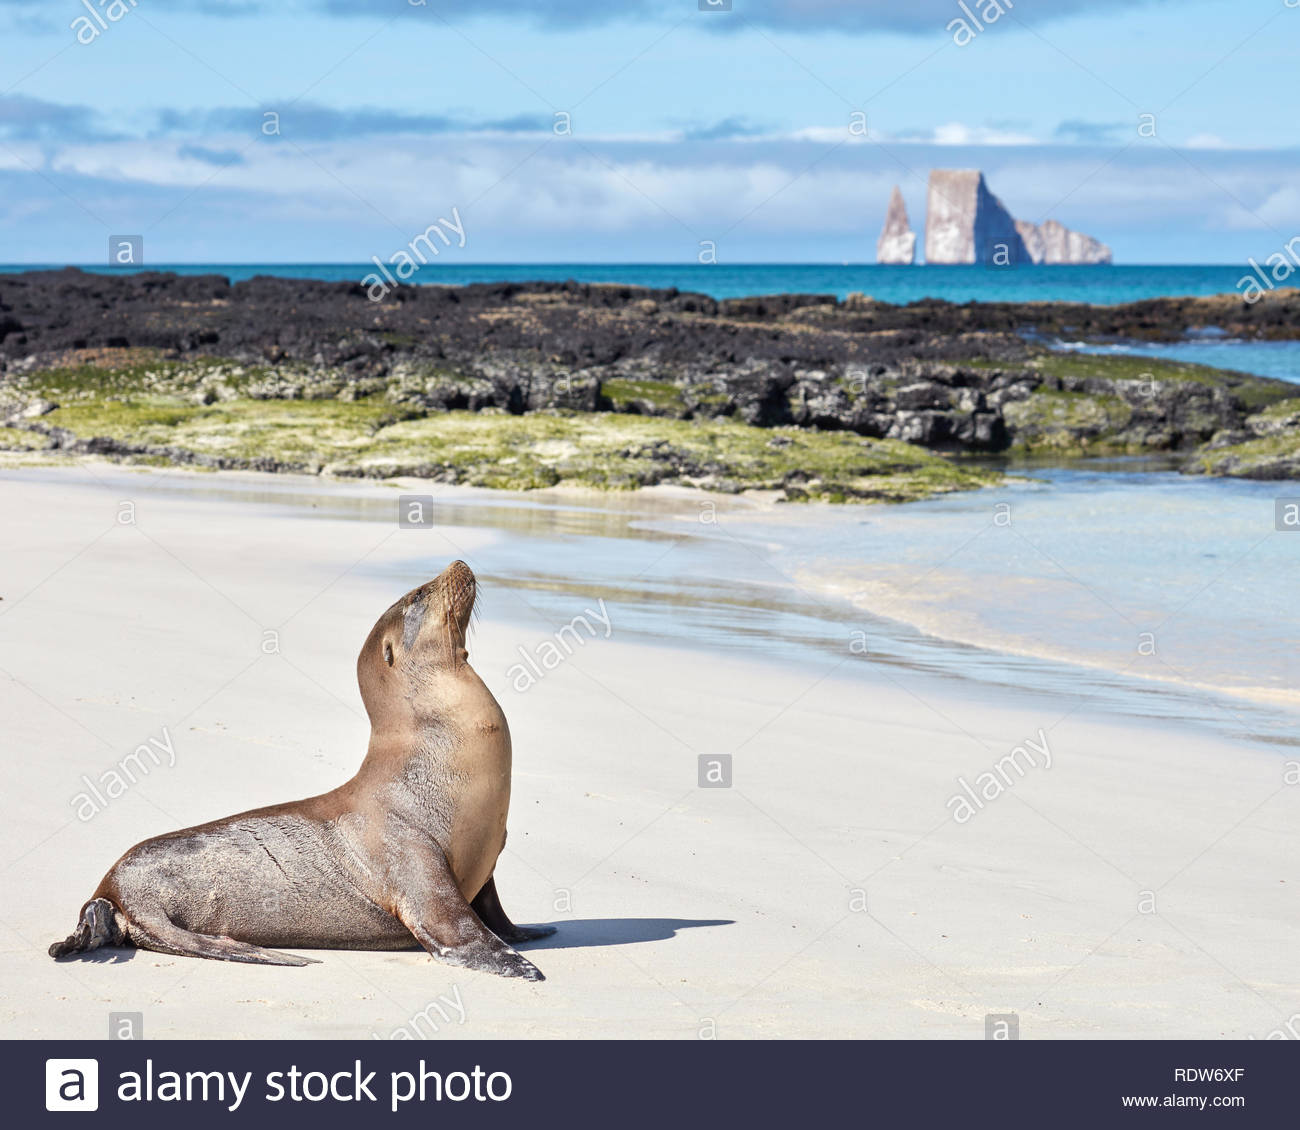 Sea Lion with Kicker Rock in Background Stock Photo 232279559   Alamy 1300x1130